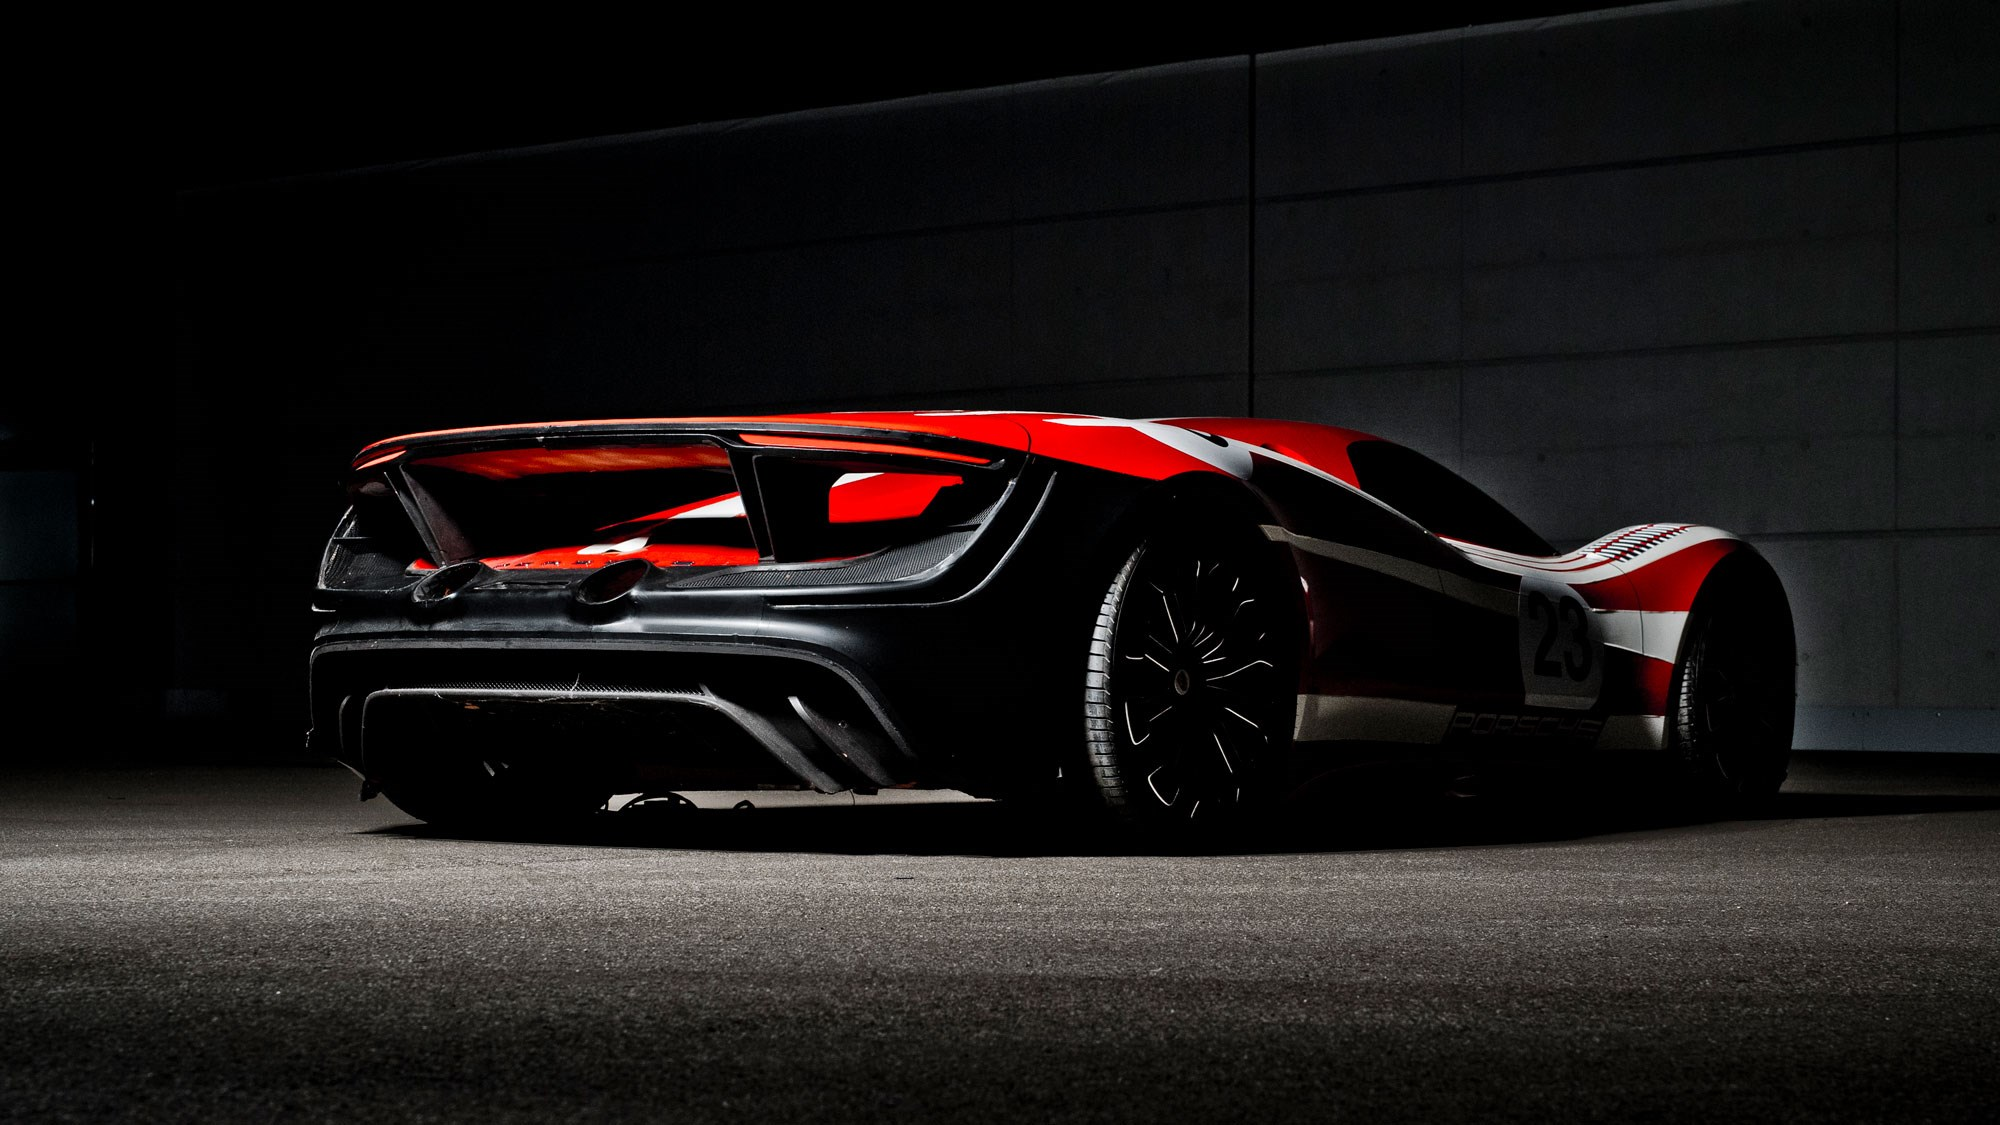 Bmw Of Murray >> Porsche 917 concept: fresh pictures of the revised racer ...